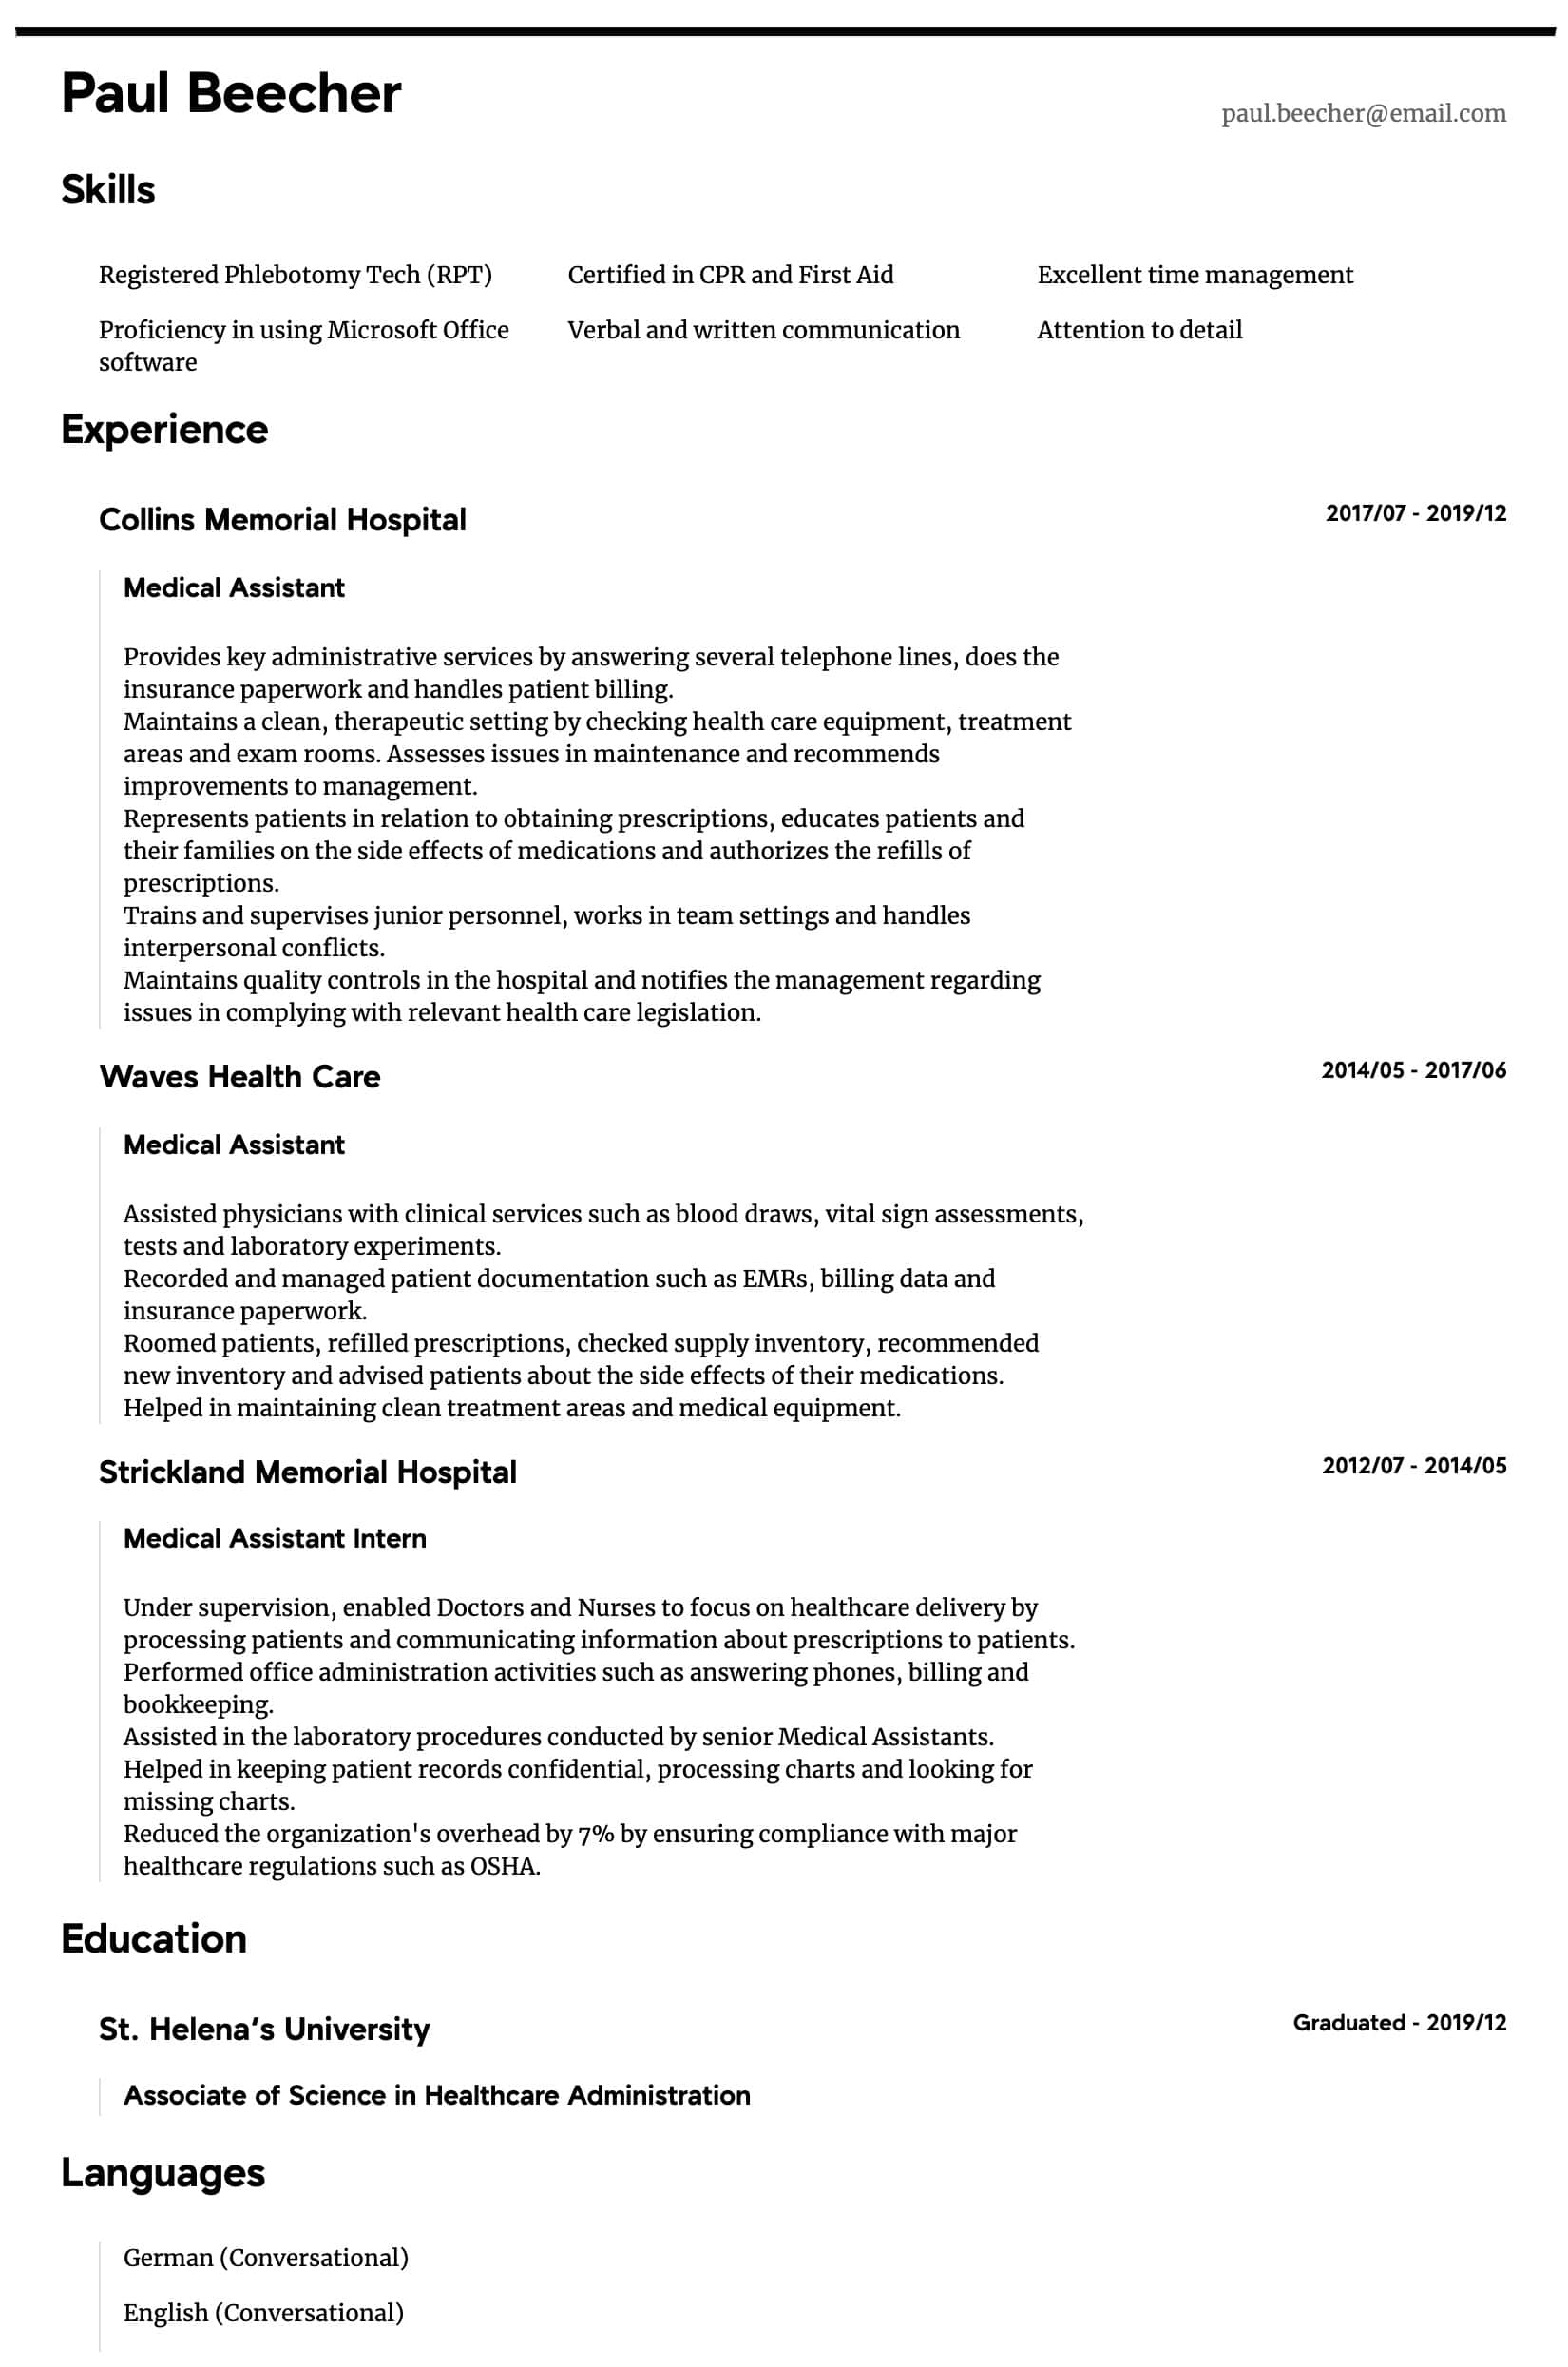 medical assistant resume samples all experience levels builder intermediate email example Resume Medical Assistant Resume Builder